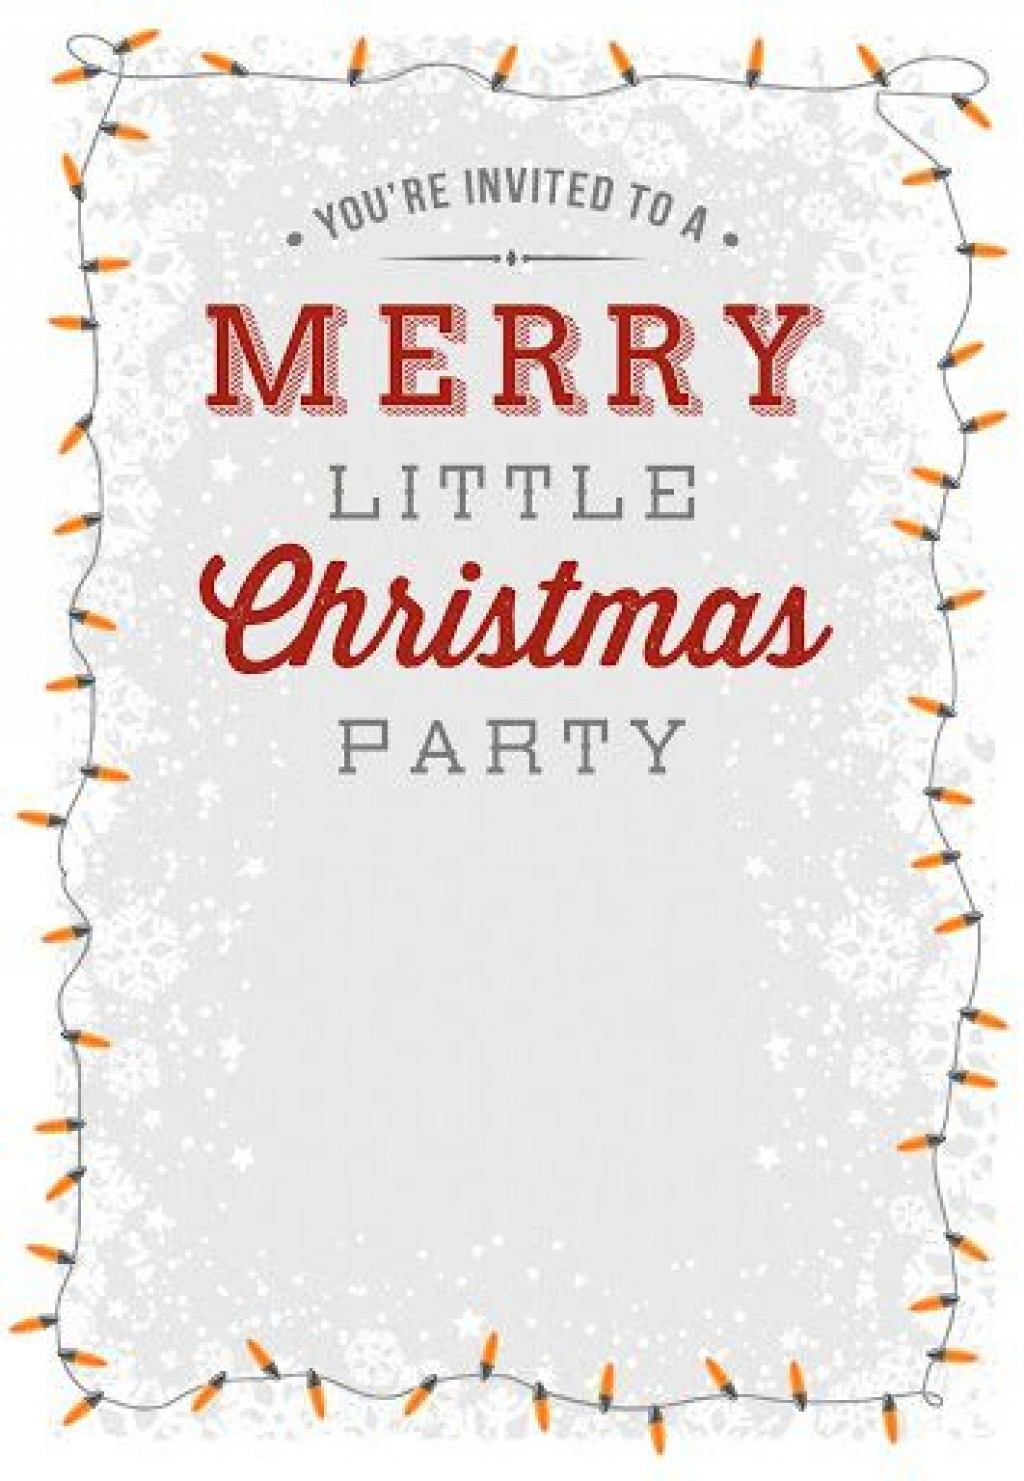 009 Striking Free Holiday Invitation Template Example  Online Party ChristmaLarge